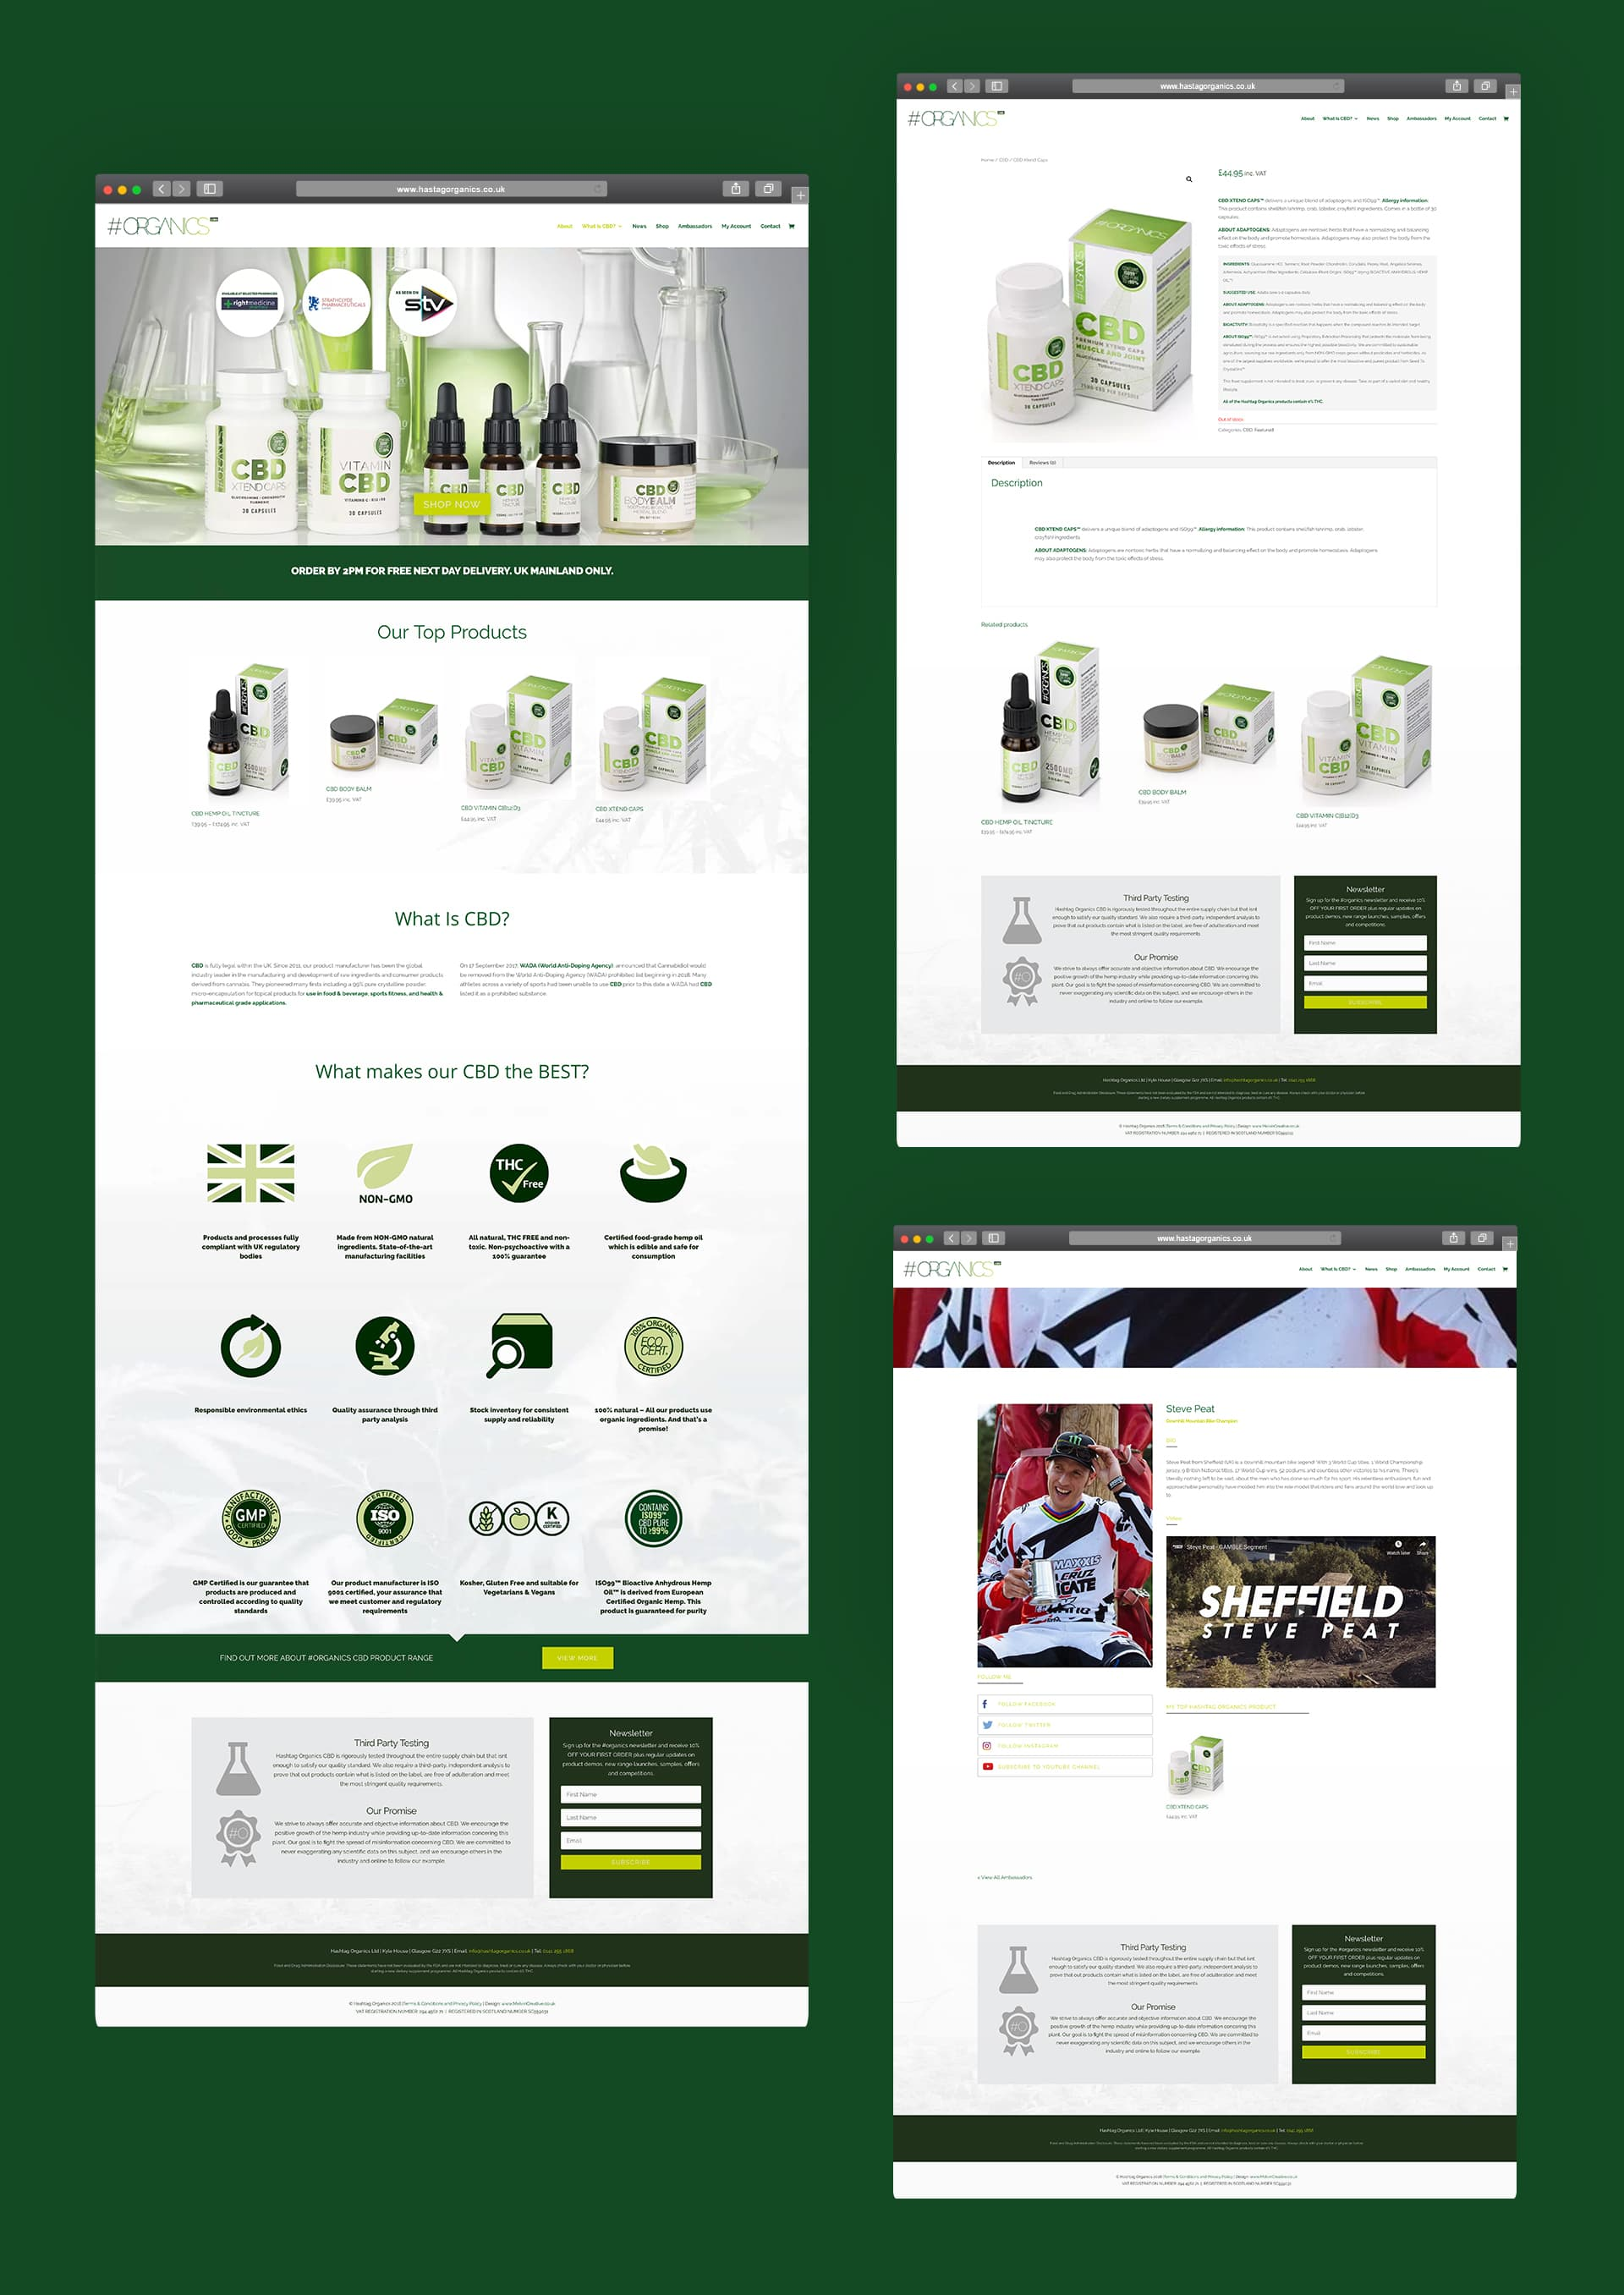 Hashtag Organics E-Commerce Website design and development